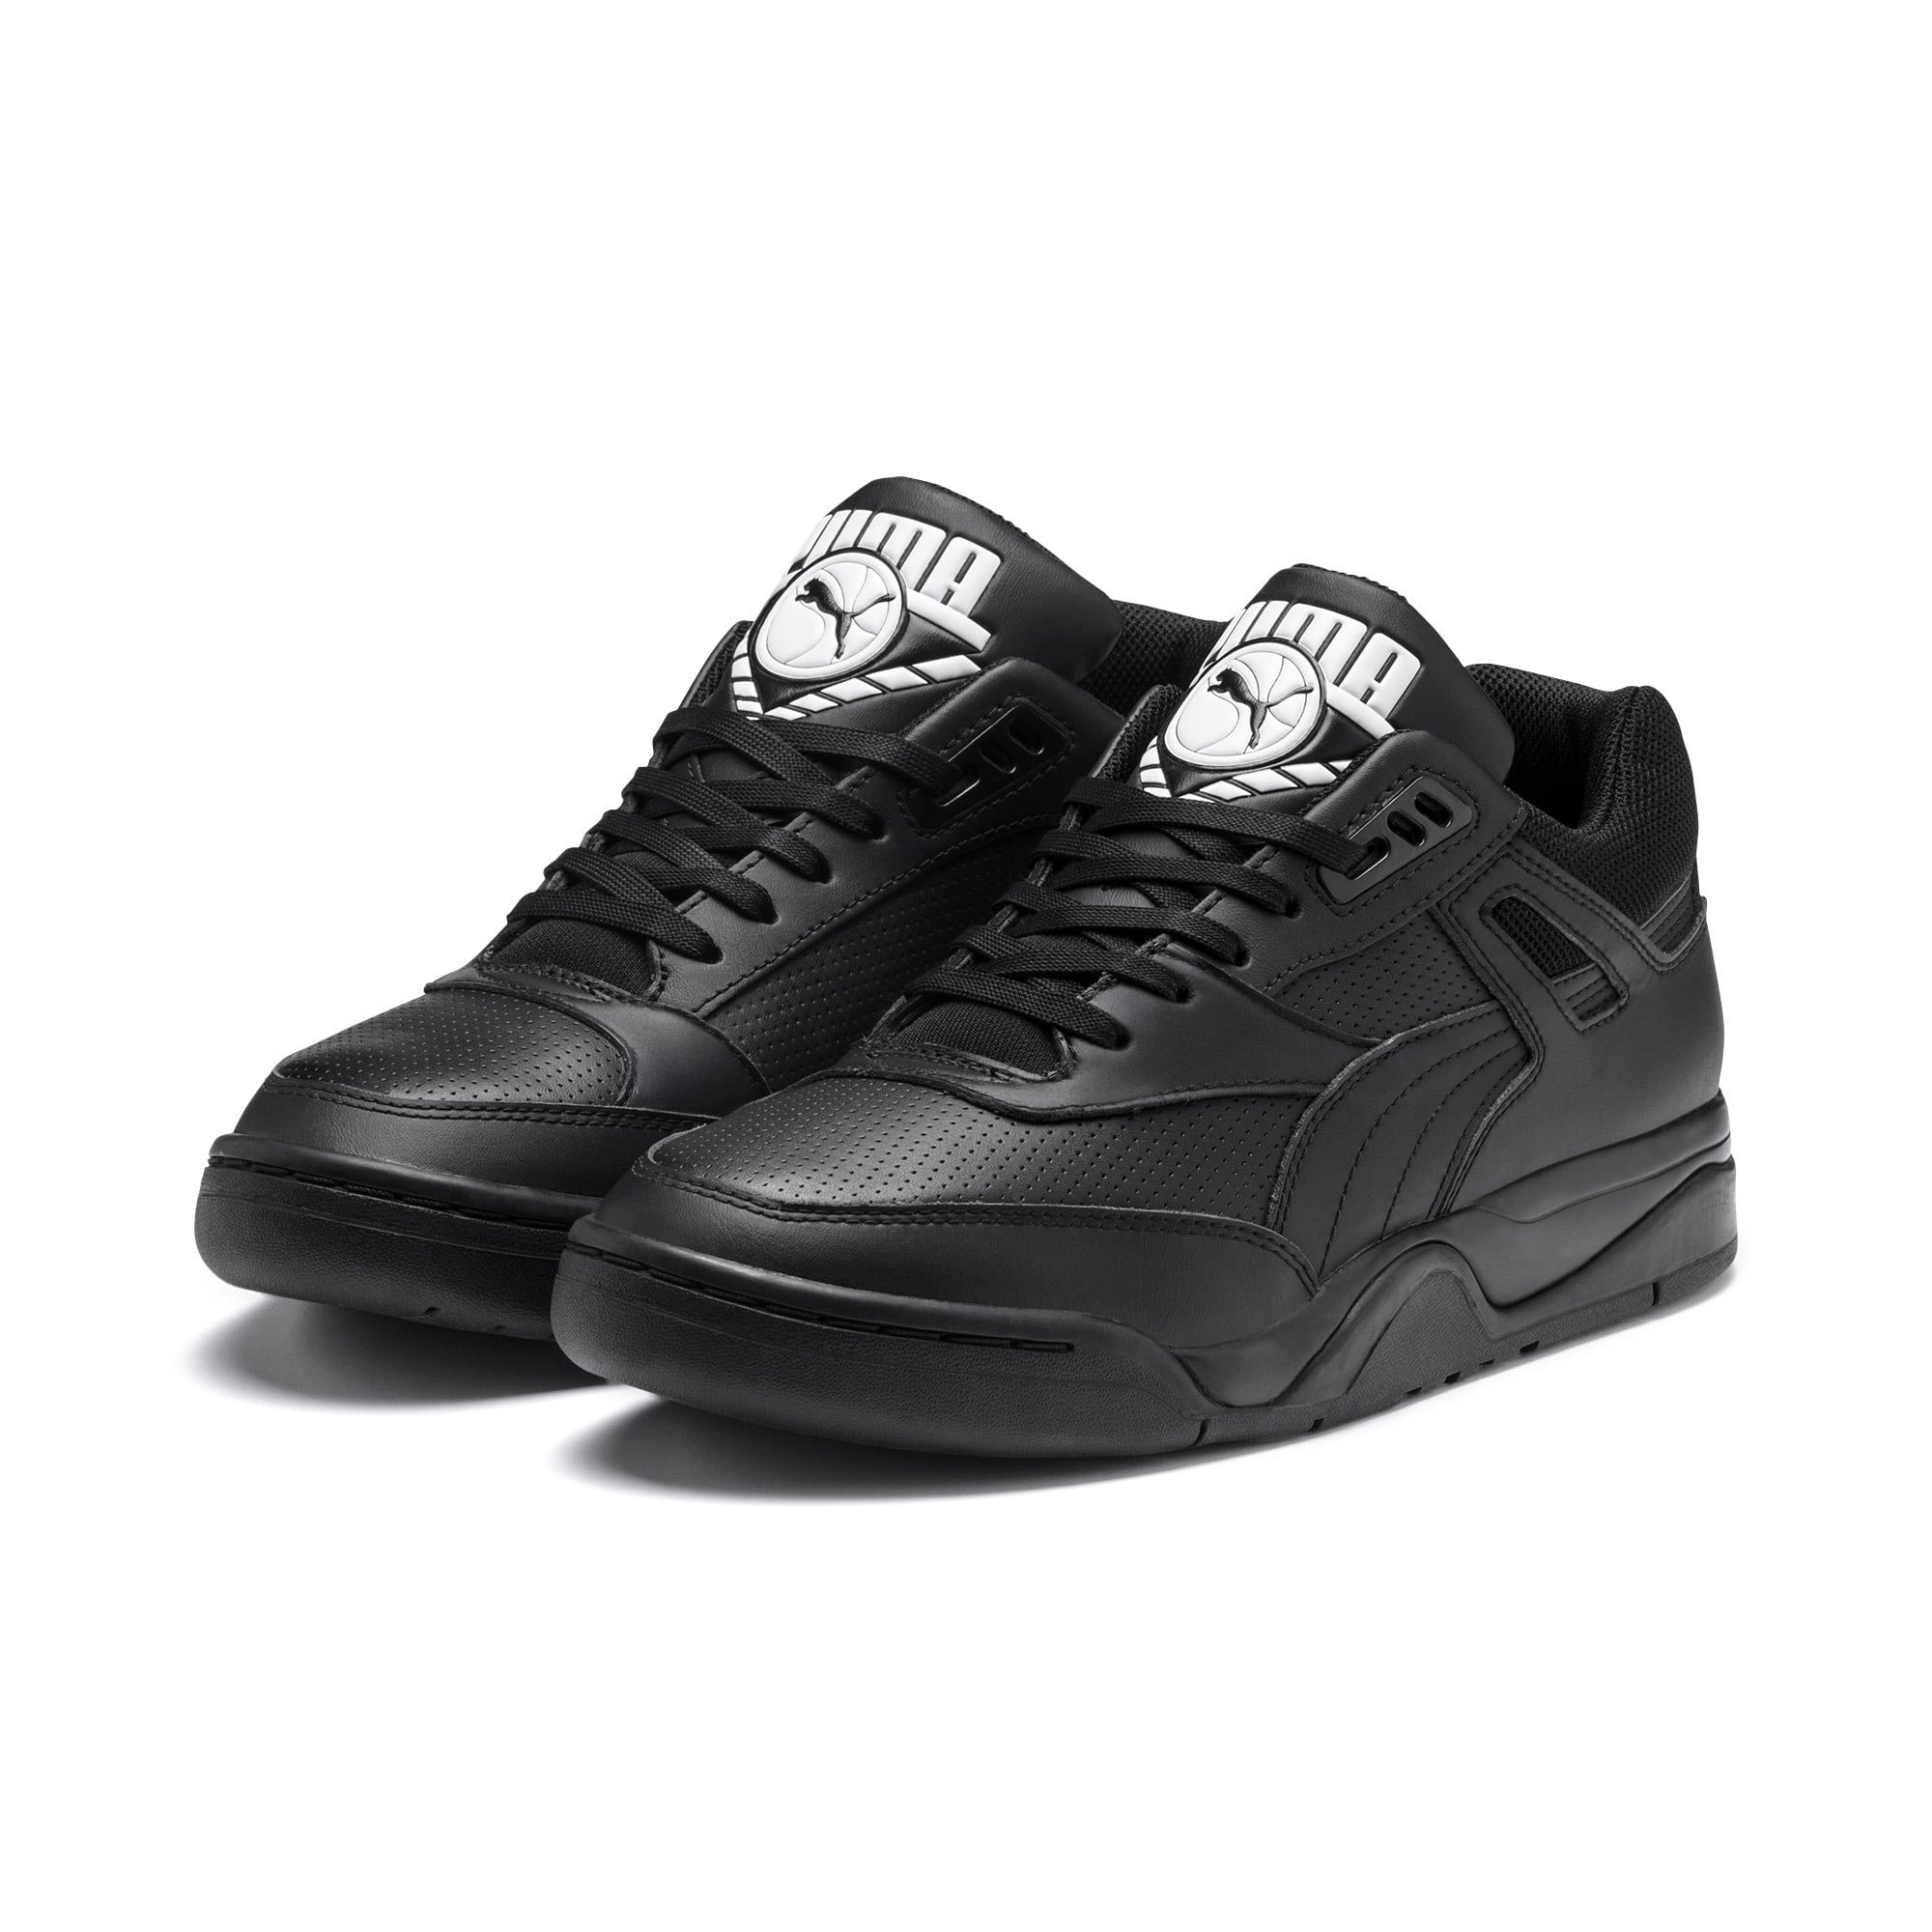 Thumbnail 2 of Palace Guard Sneakers, Puma Black-Puma White, medium